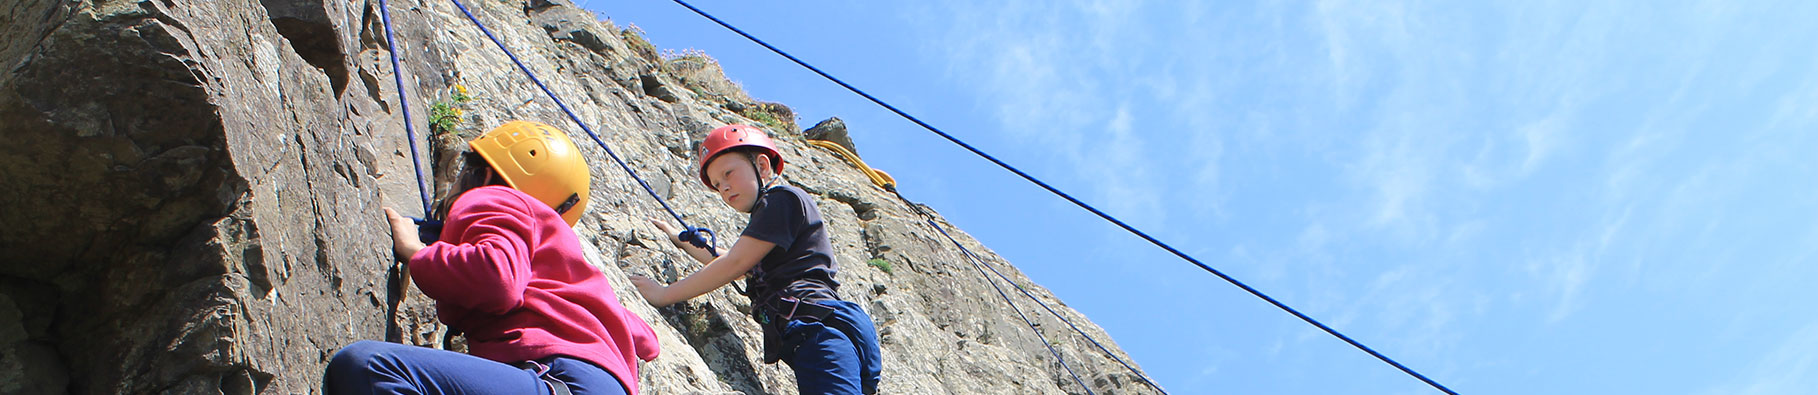 Rock climbing activity at Shoreline in Bude, Cornwall